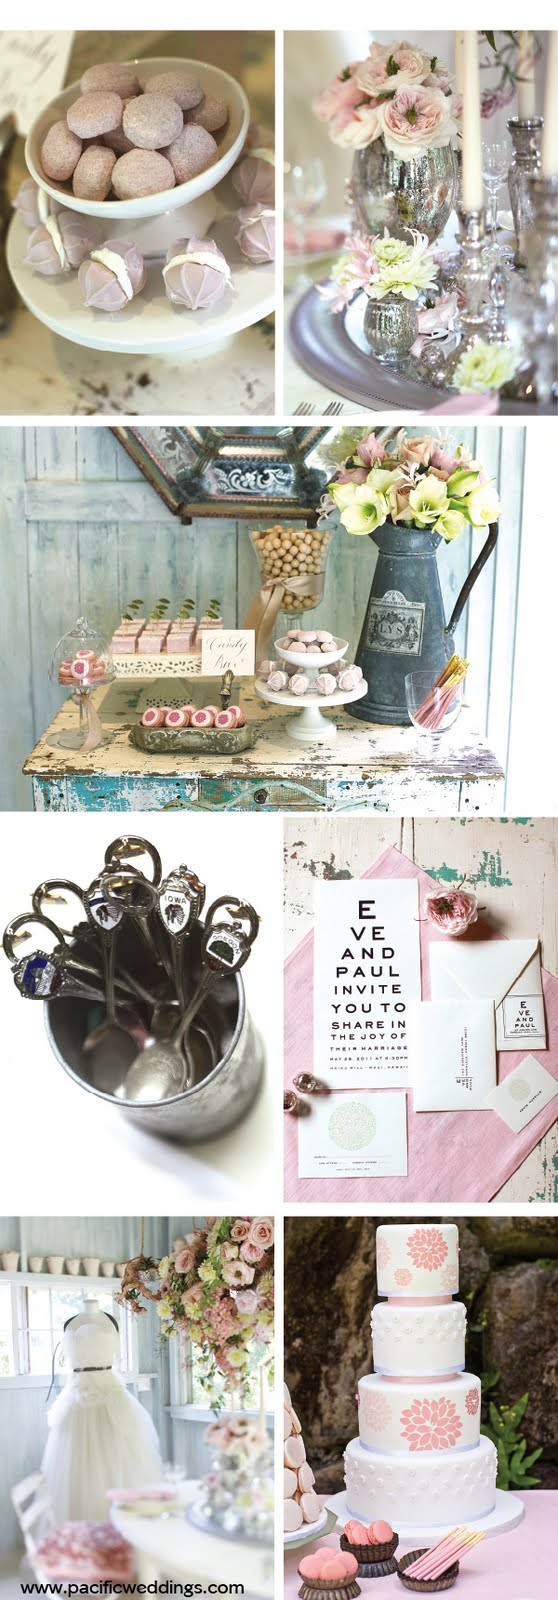 Your Wedding Support: GET THE LOOK - French Themed Wedding